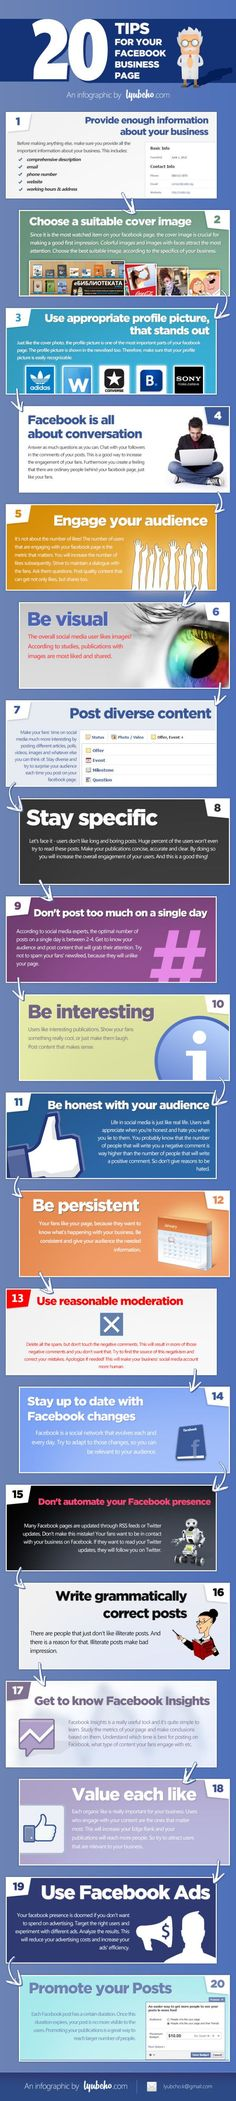 20 tips for your Facebook business page #Infographic